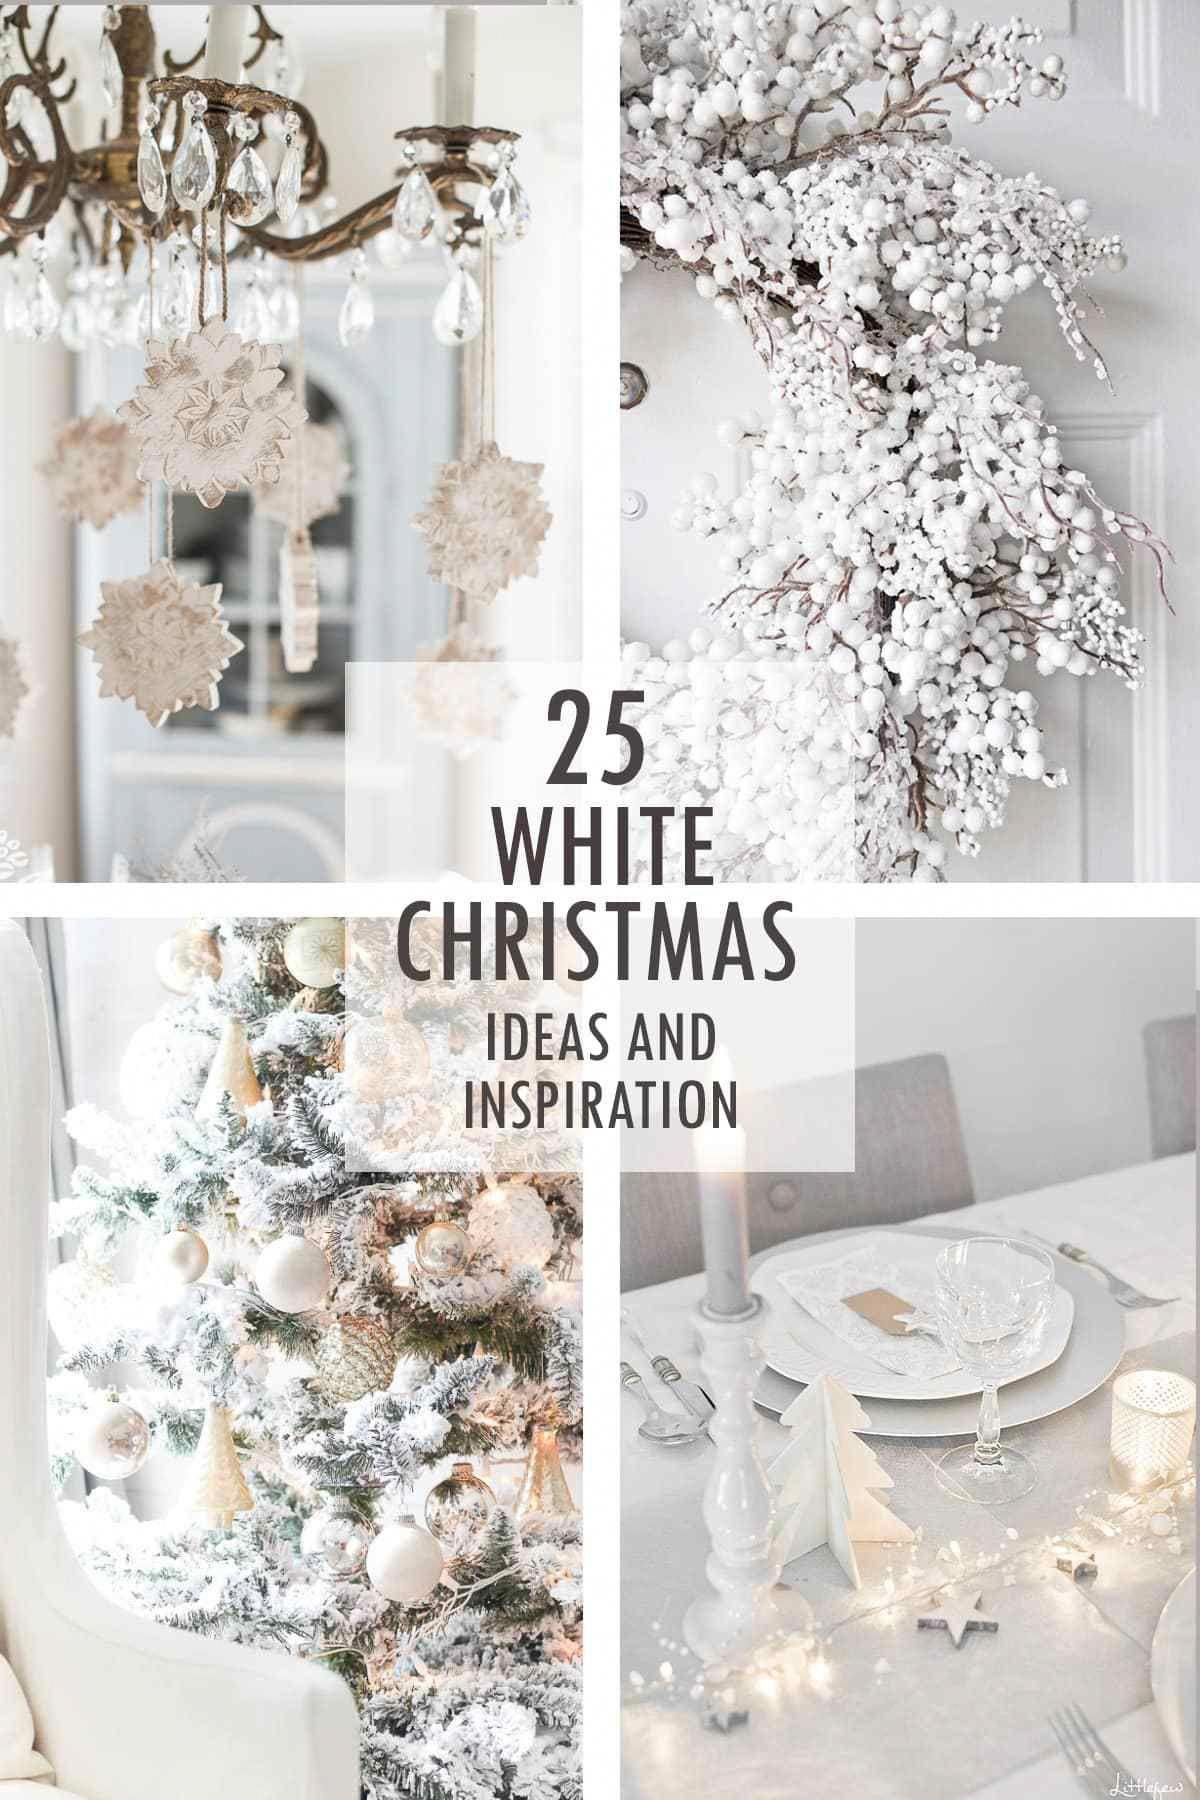 After taking a gander at these 25 White Christmas ideas and ...